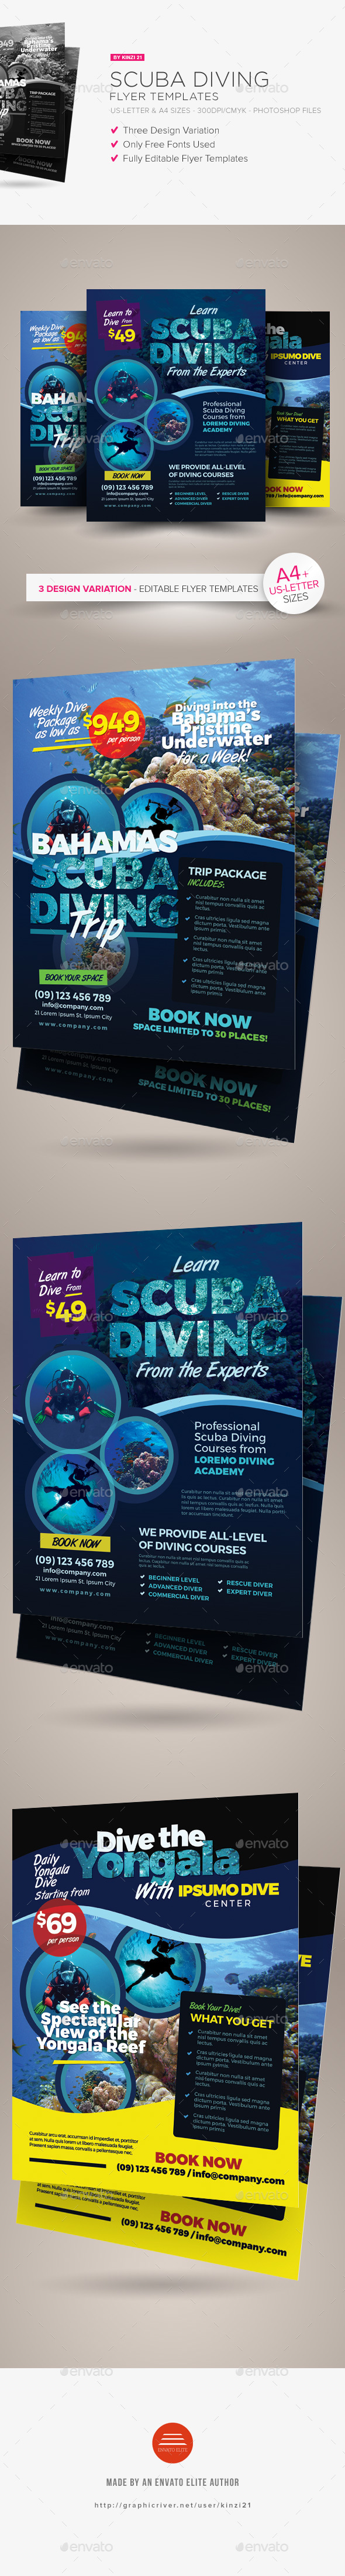 Scuba Diving Flyer Templates - Sports Events